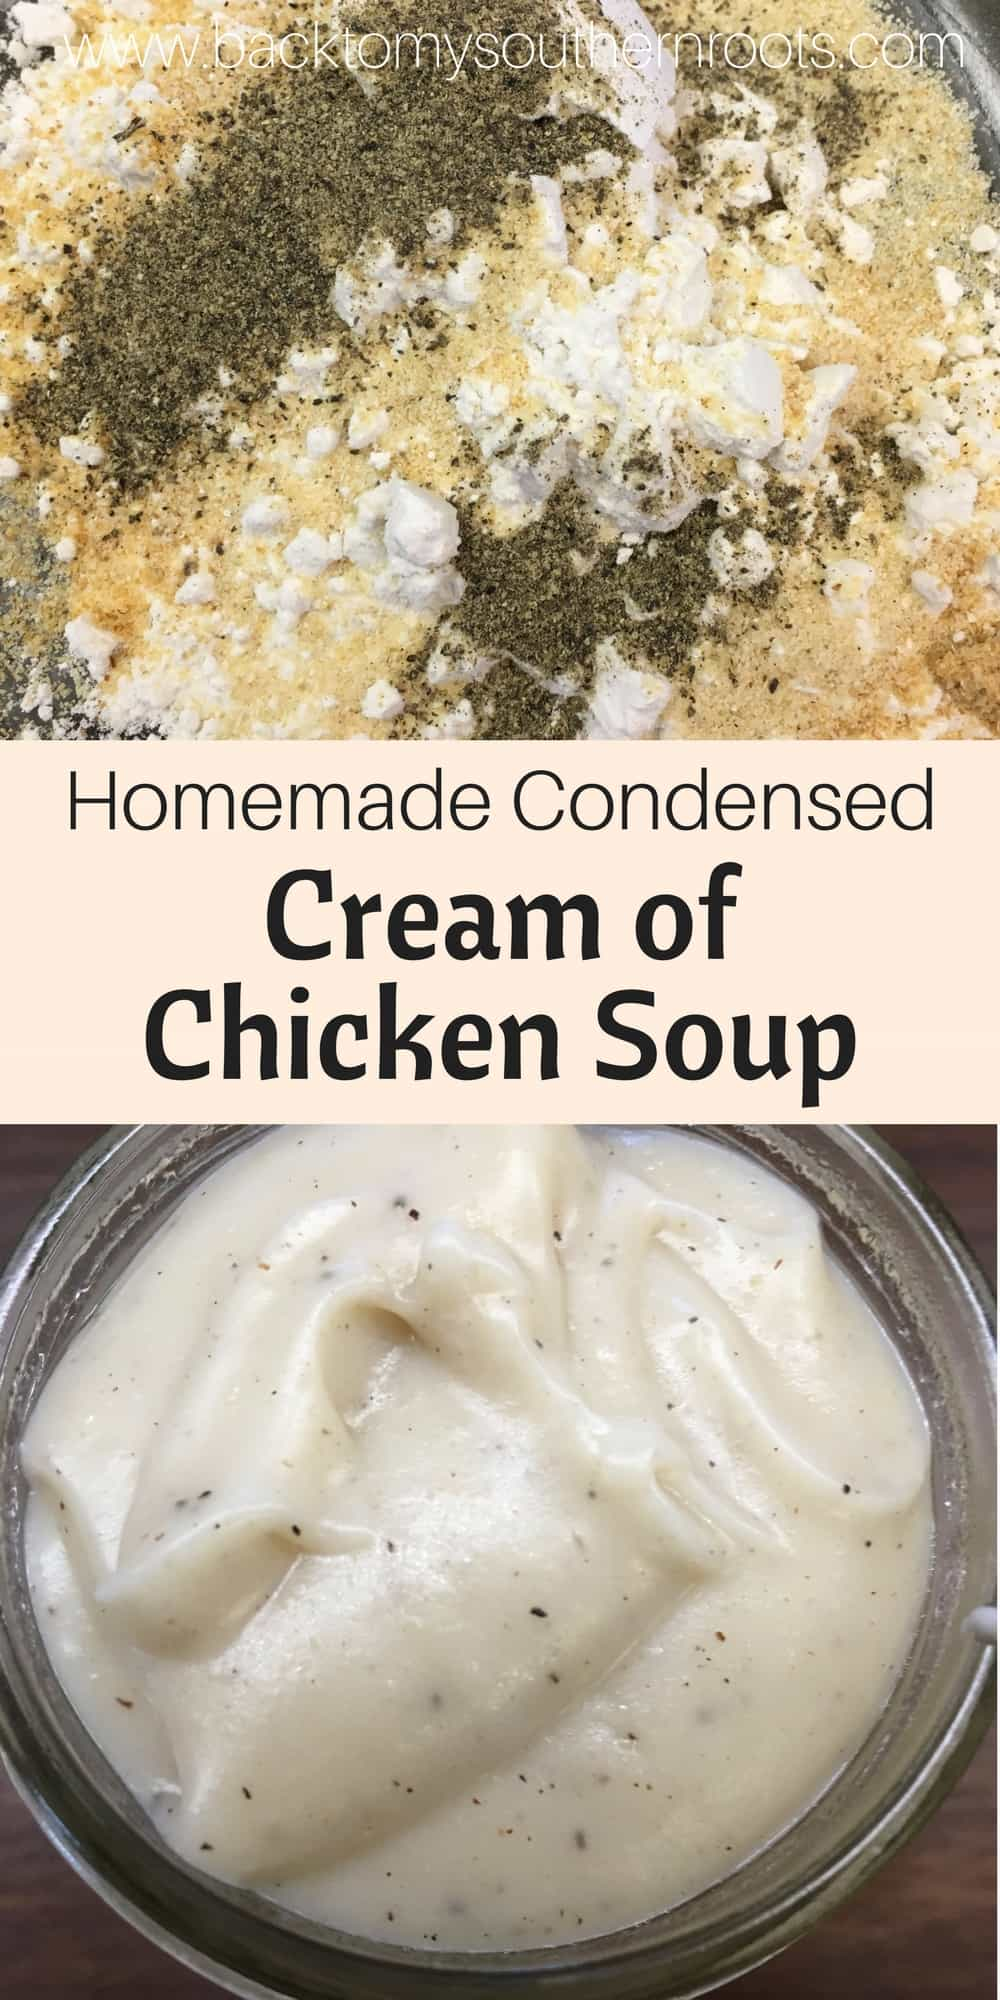 Easy Homemade Condensed Cream of Chicken Soup is a cinch to make in a pinch and you don't have time to run to the store to get a can, but need it now. It uses ingredients that most of us already have at the house.